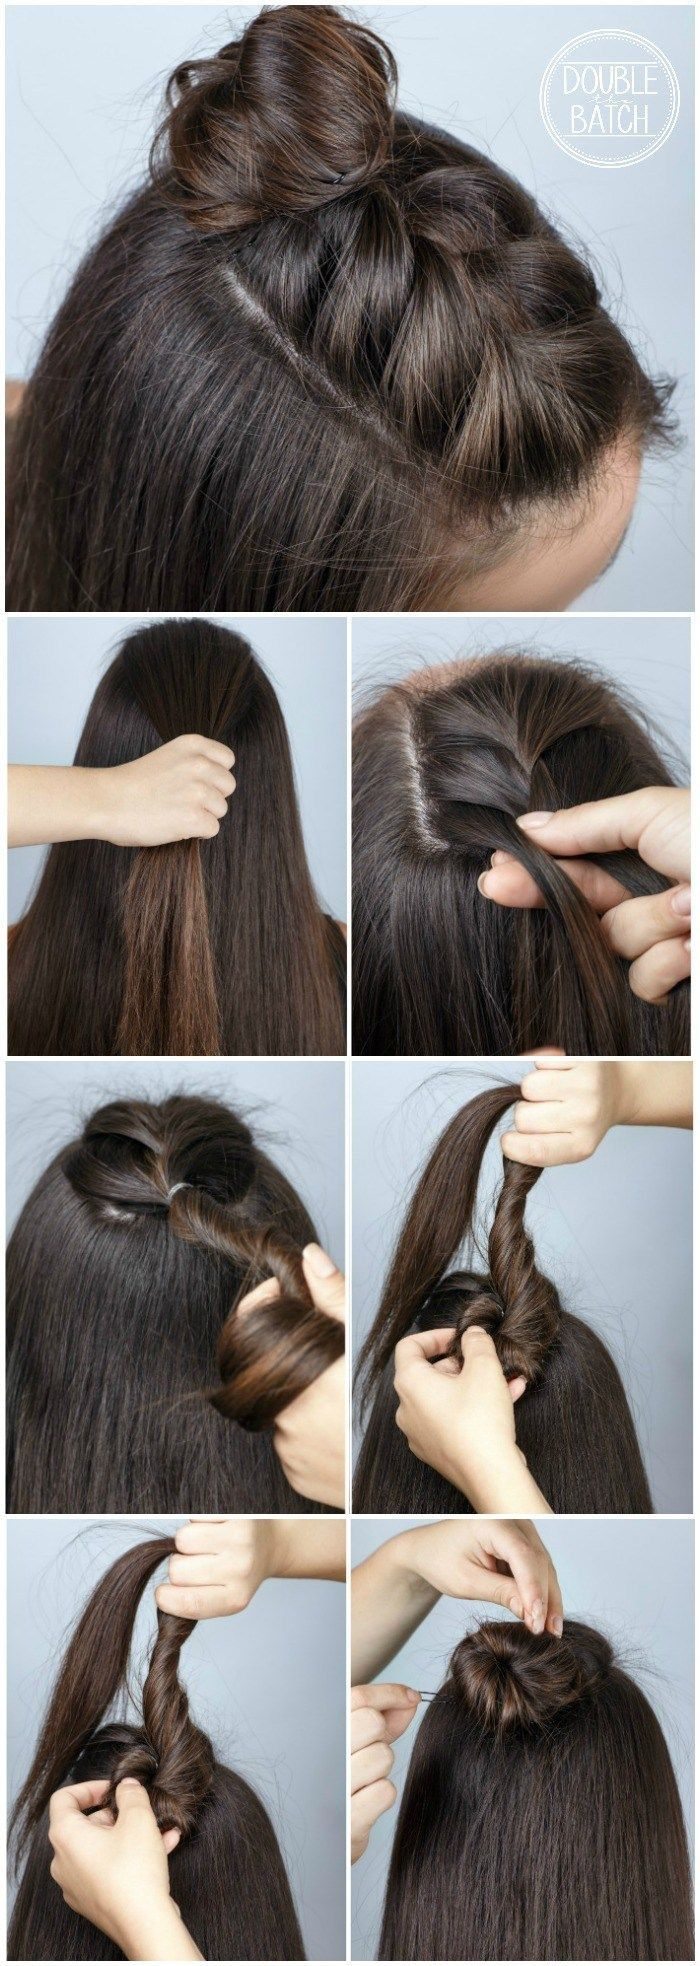 easy braids for school - photo #40